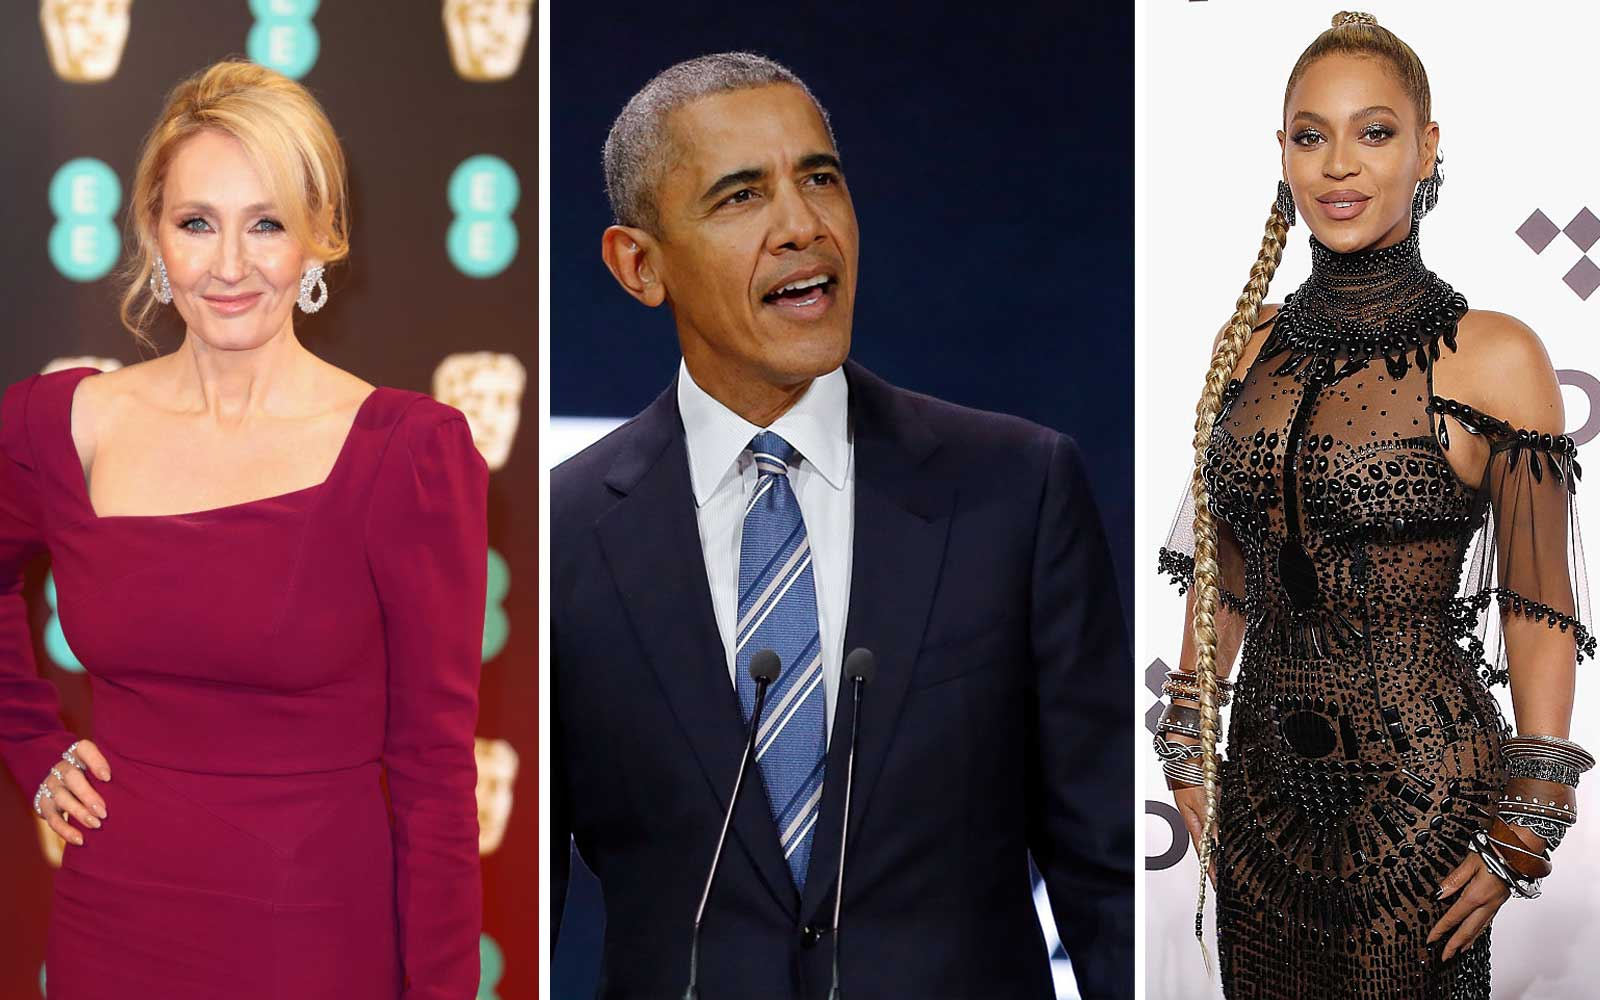 JK Rowling, Barack Obama, and Beyonce